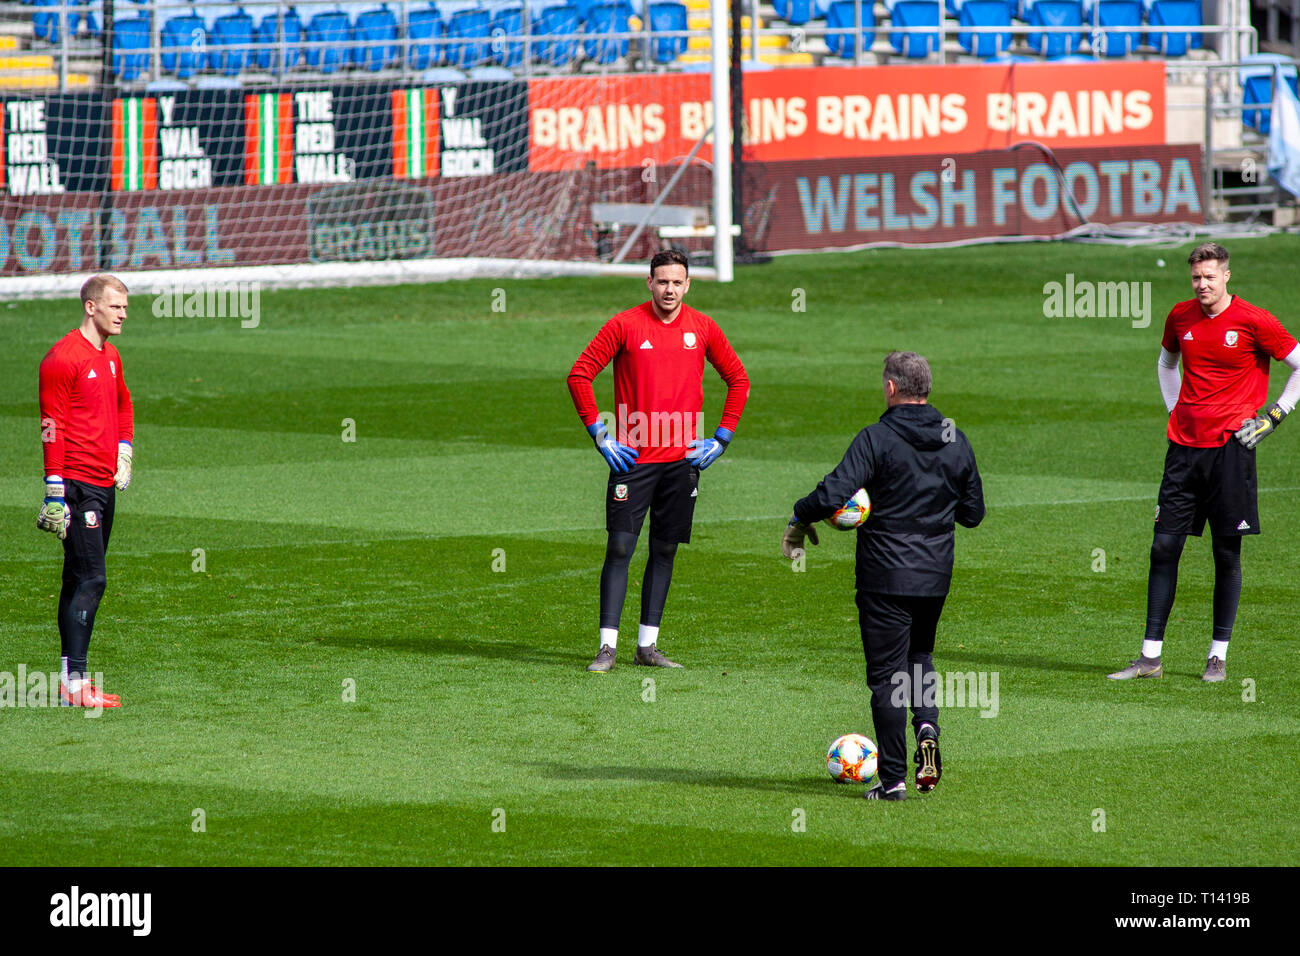 Cardiff, UK. 23rd Mar, 2019. Welsh Goalkeepers Chris Maxwell, Danny Ward & Wayne Hennessey at training ahead of Wales v Slovakia UEFA Euro 2020 Qualifier at the Cardiff City Stadium. Credit: Lewis Mitchell/Alamy Live News Stock Photo